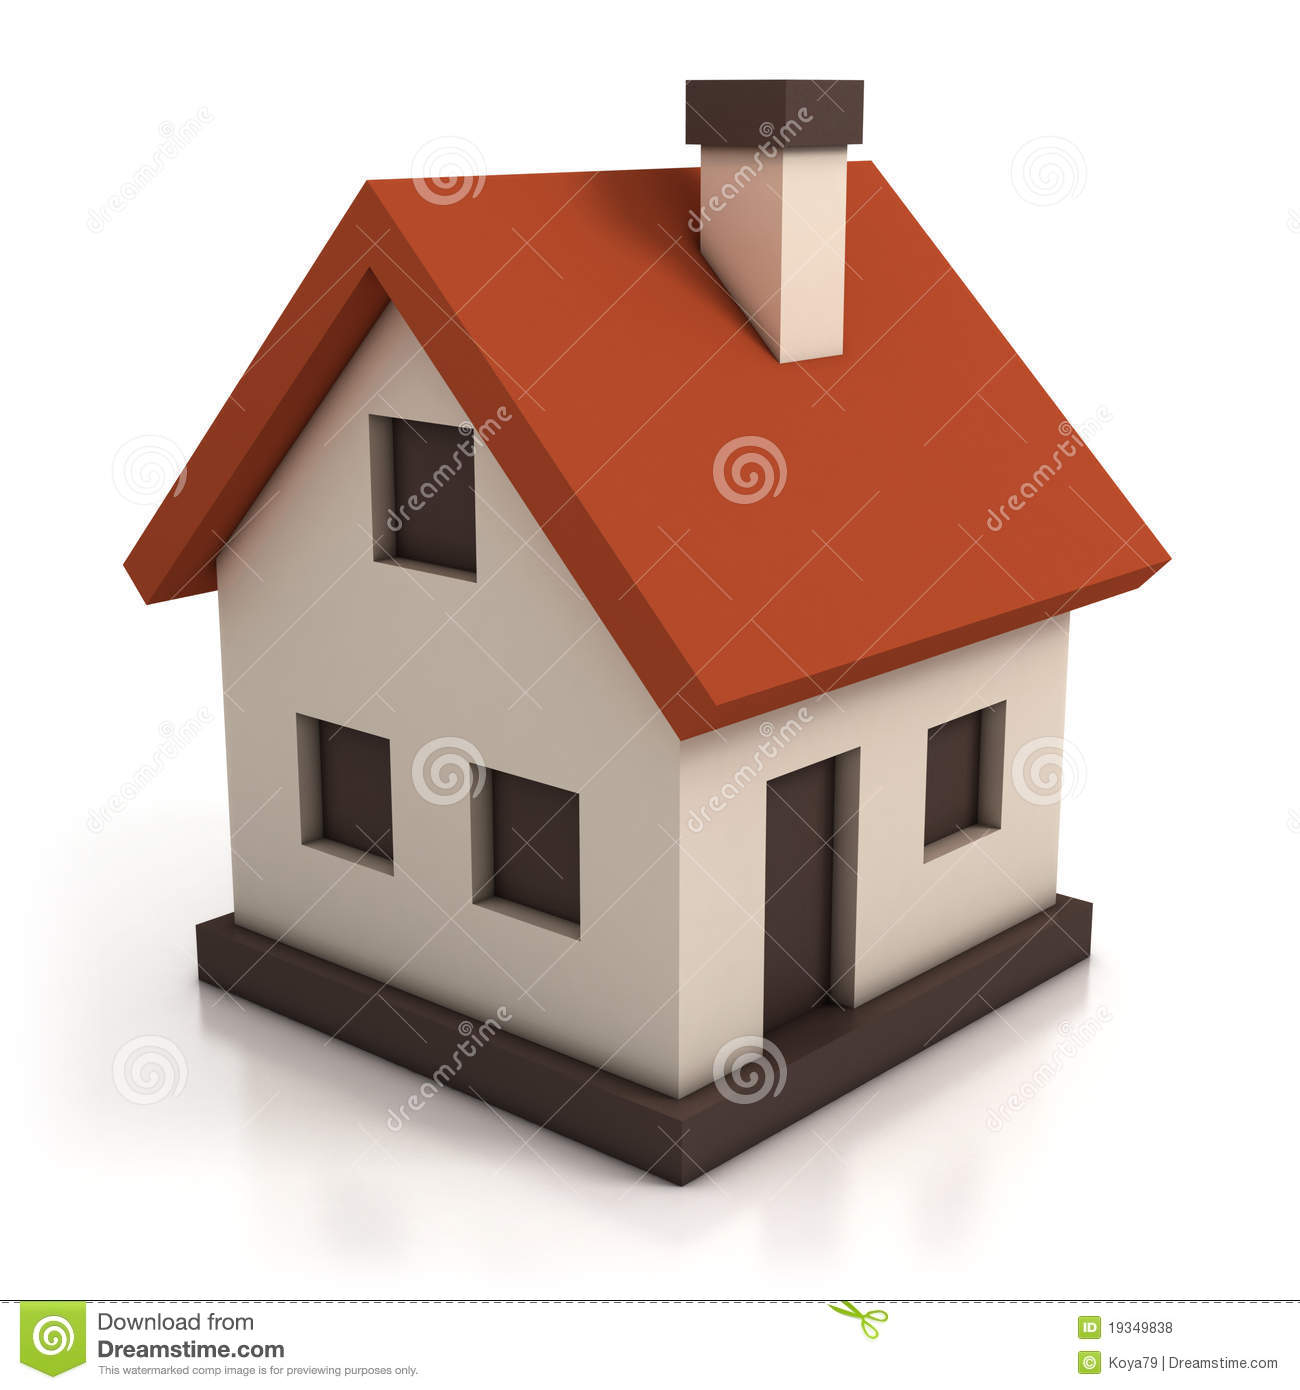 House Icon Royalty Free Stock Photos - Image: 19349838